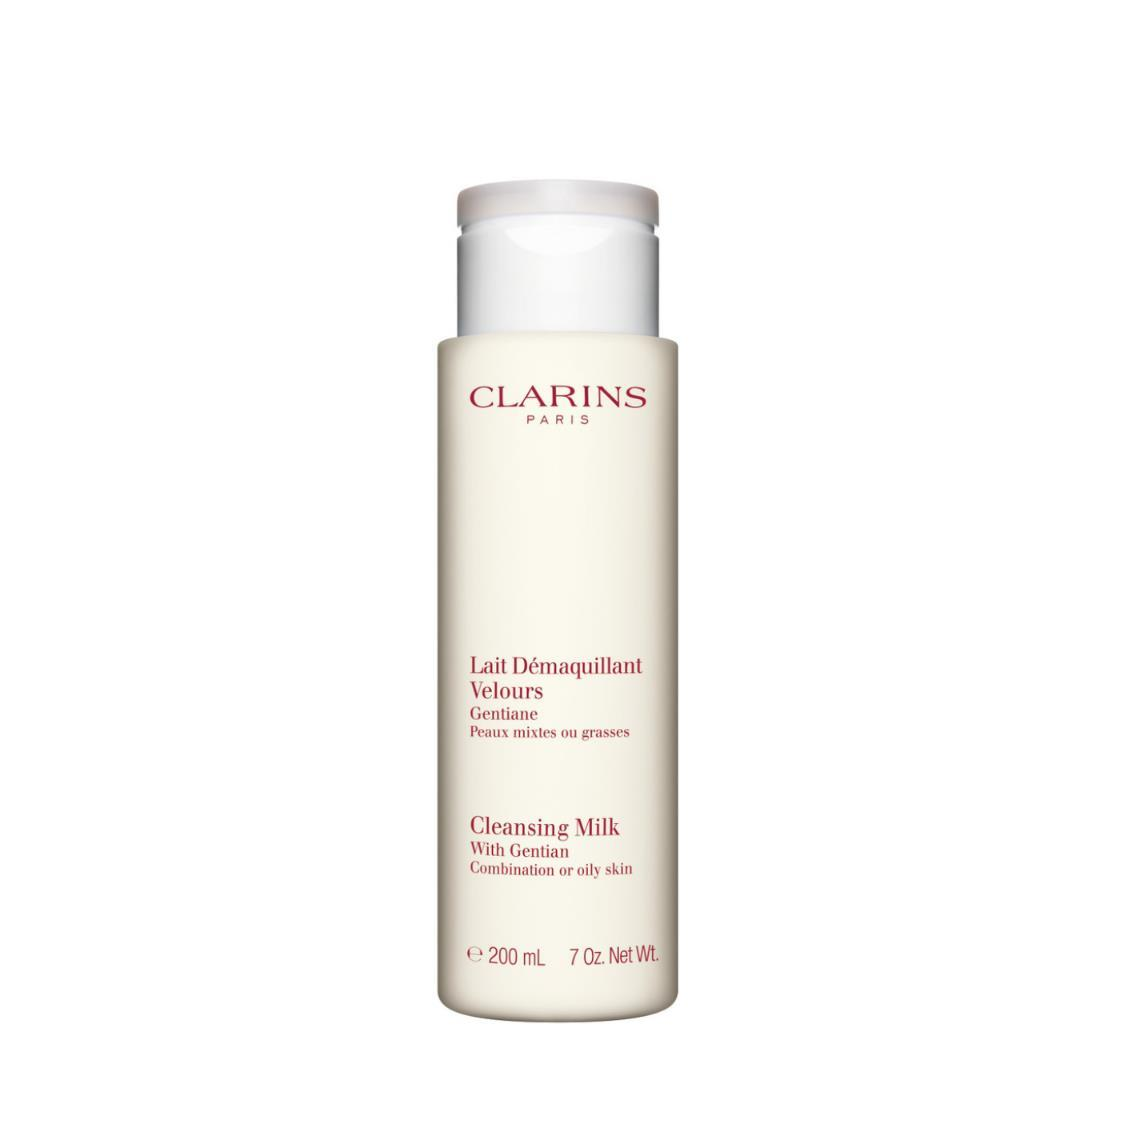 Clarins Cleansing Milk with Gentian Combination or Oily Skin 200ml